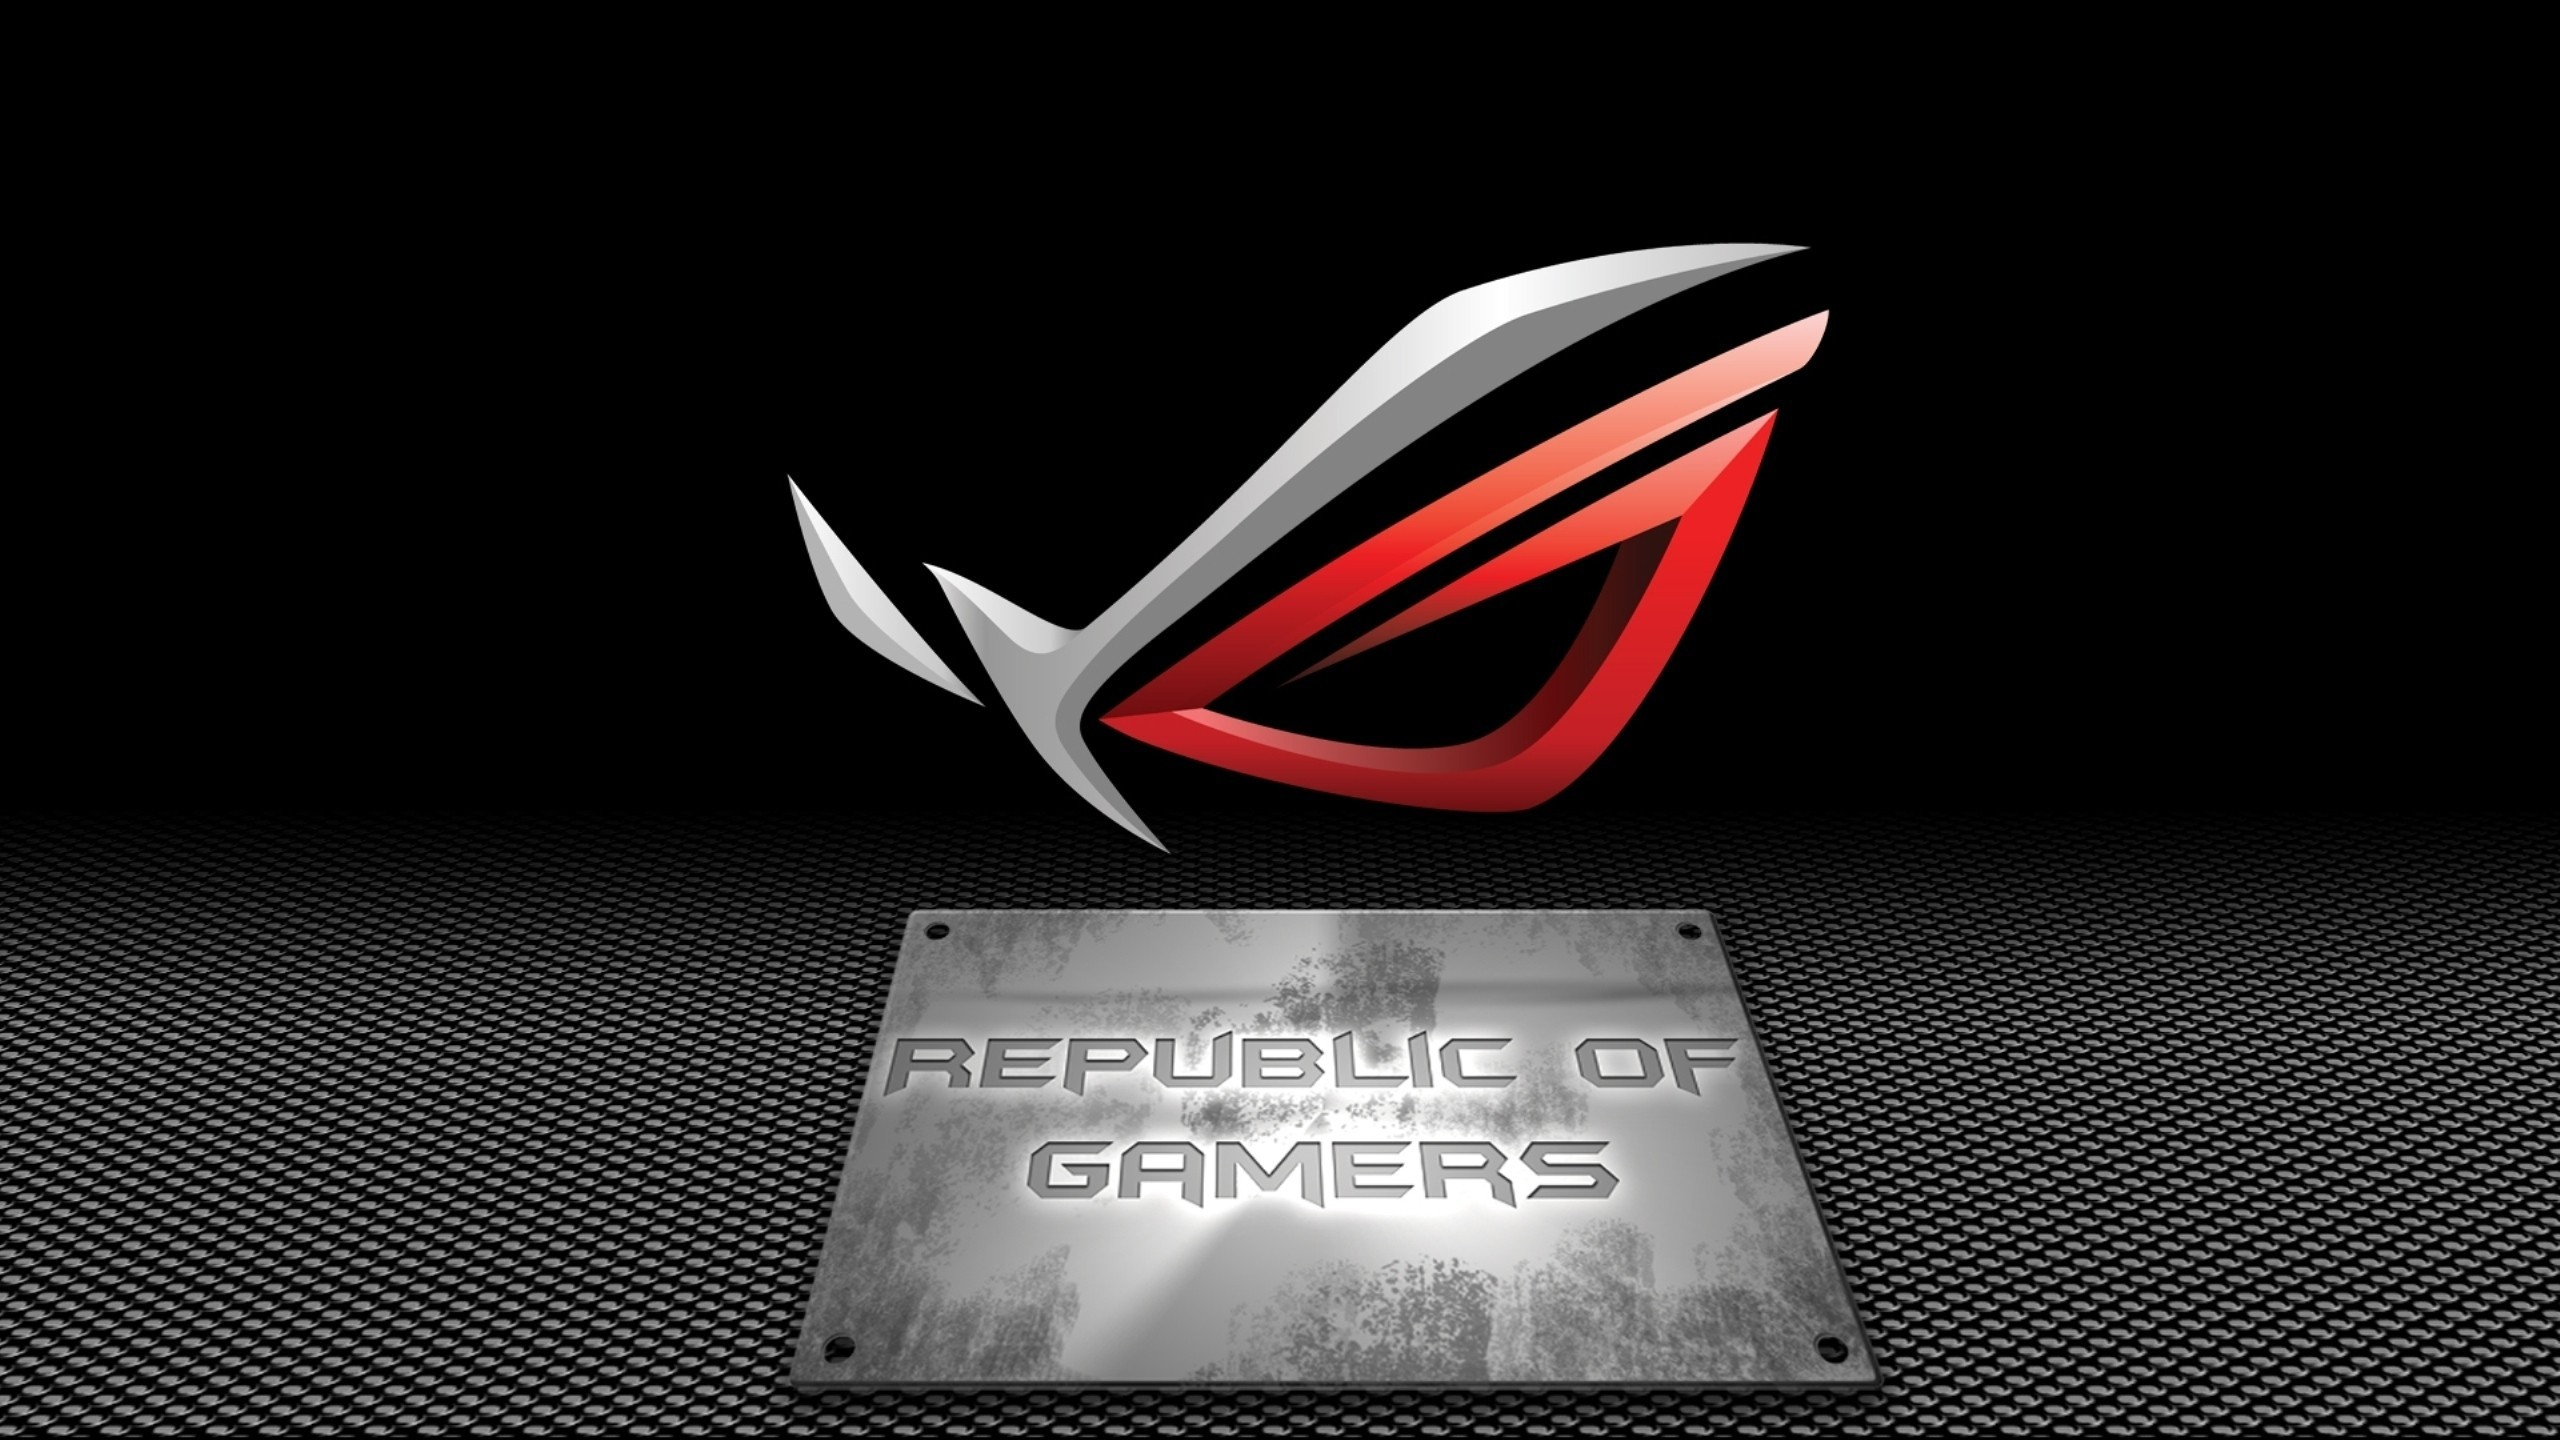 Asus Rog Republik Gamer Wallpaper Allwallpaper In 685 Pc De